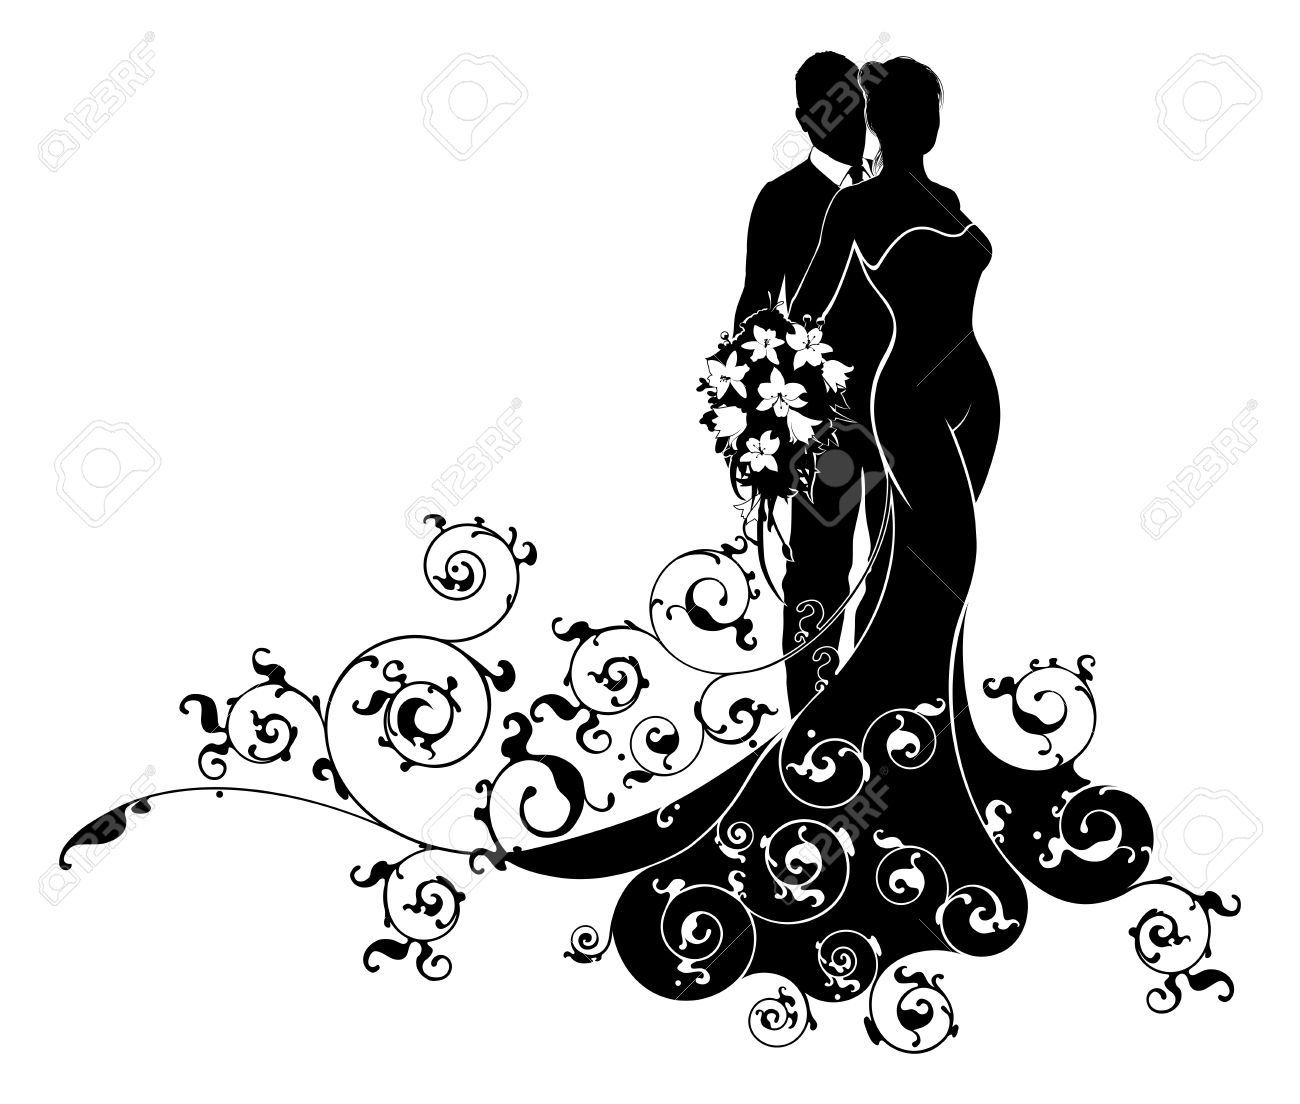 Bride And Groom Wedding Abstract Dress Silhouette